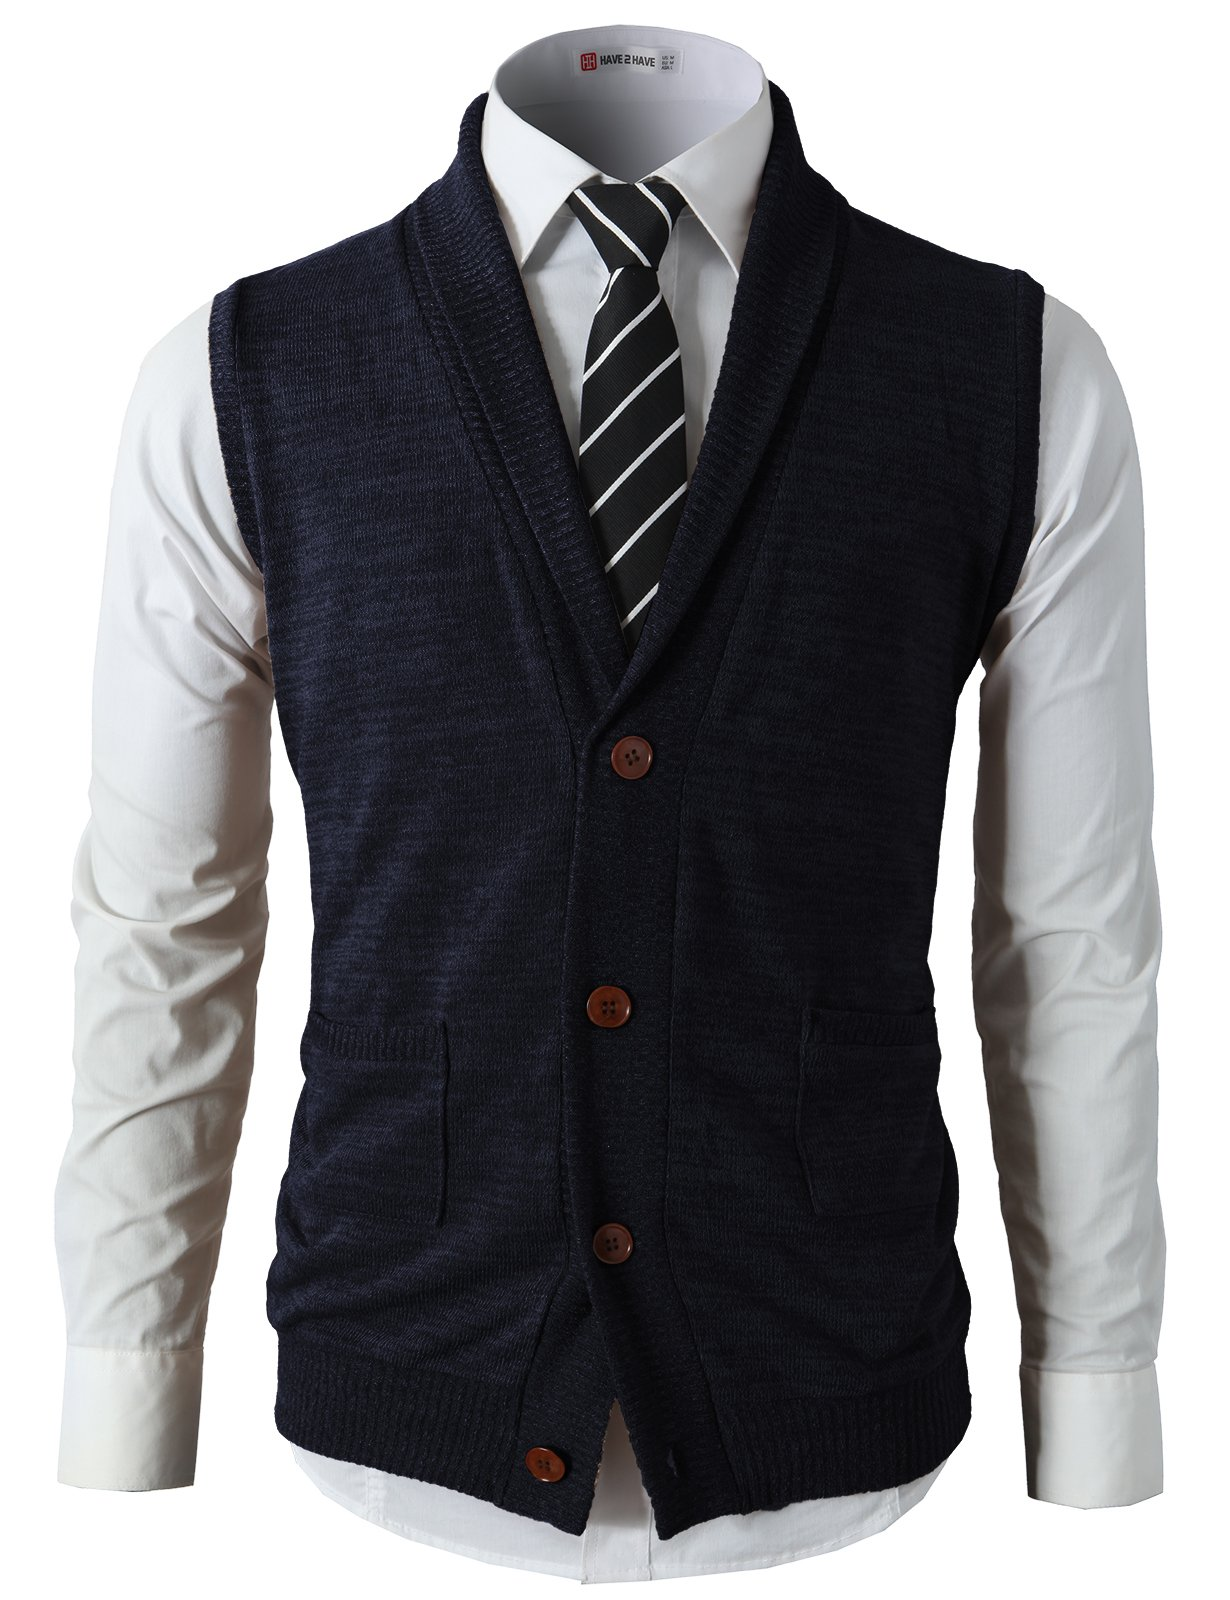 H2H Mens Casual Basic Shawl Collar Fine Knitted Slim Fit Vest Navy US L/Asia XL (CMOV034) by H2H (Image #2)